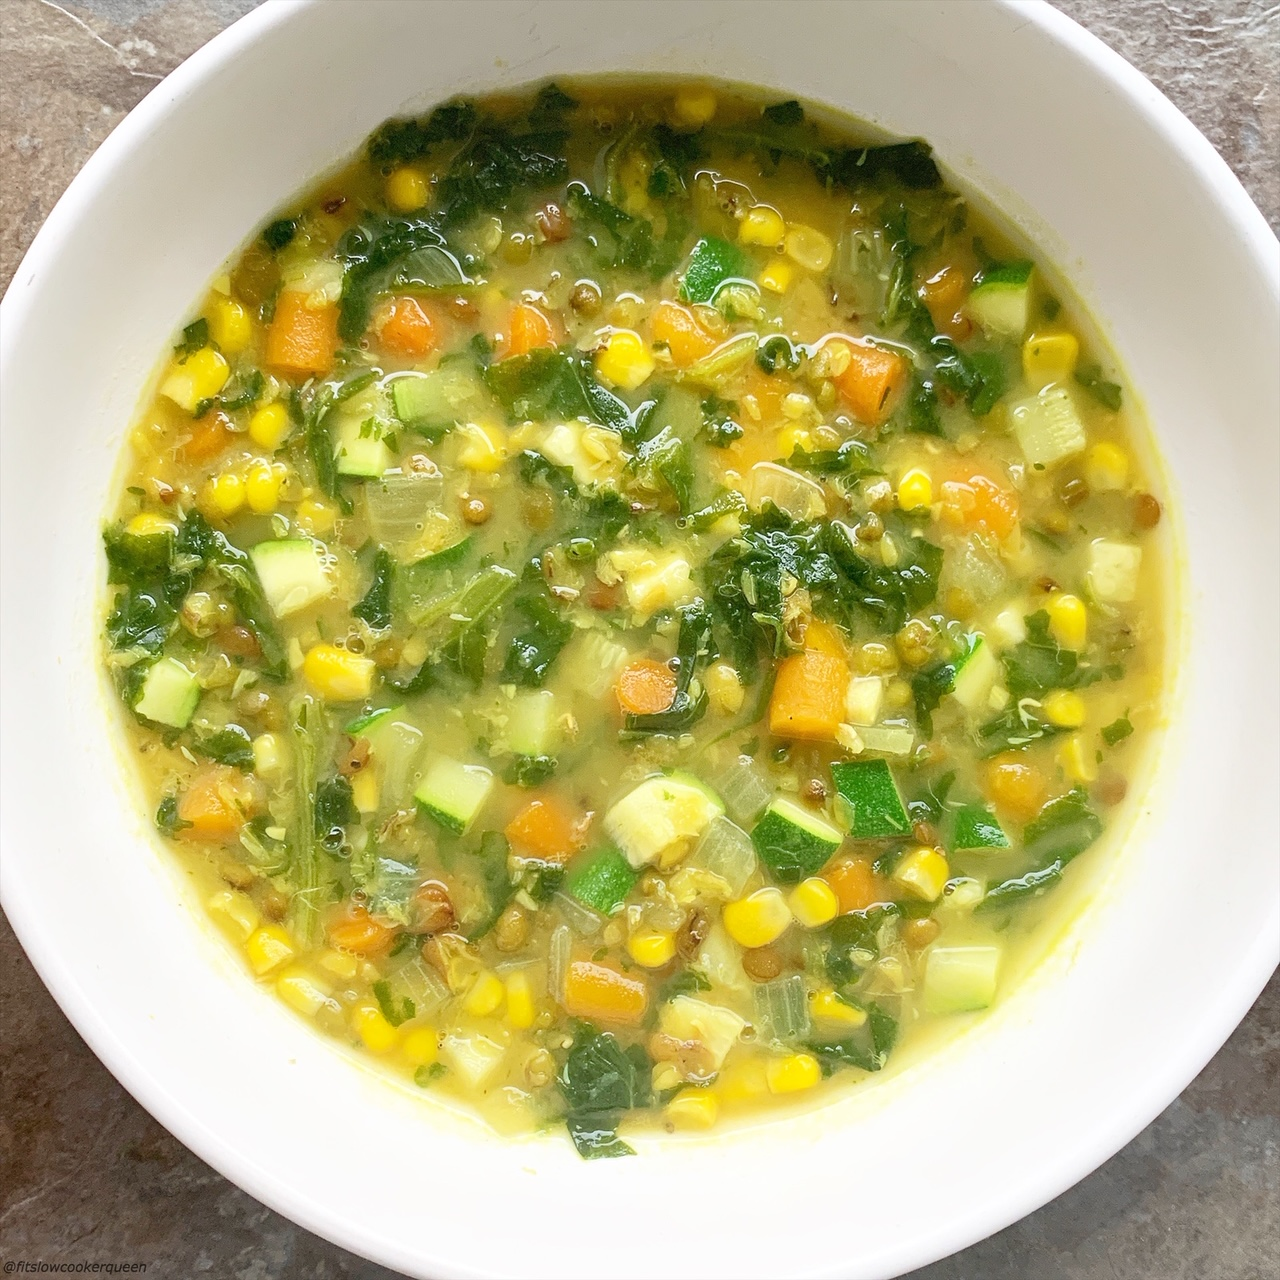 Lentils and mung beans star in this simple vegan soup recipe that's packed with flavor. Make this healthy soup in your slow cooker or Instant Pot.